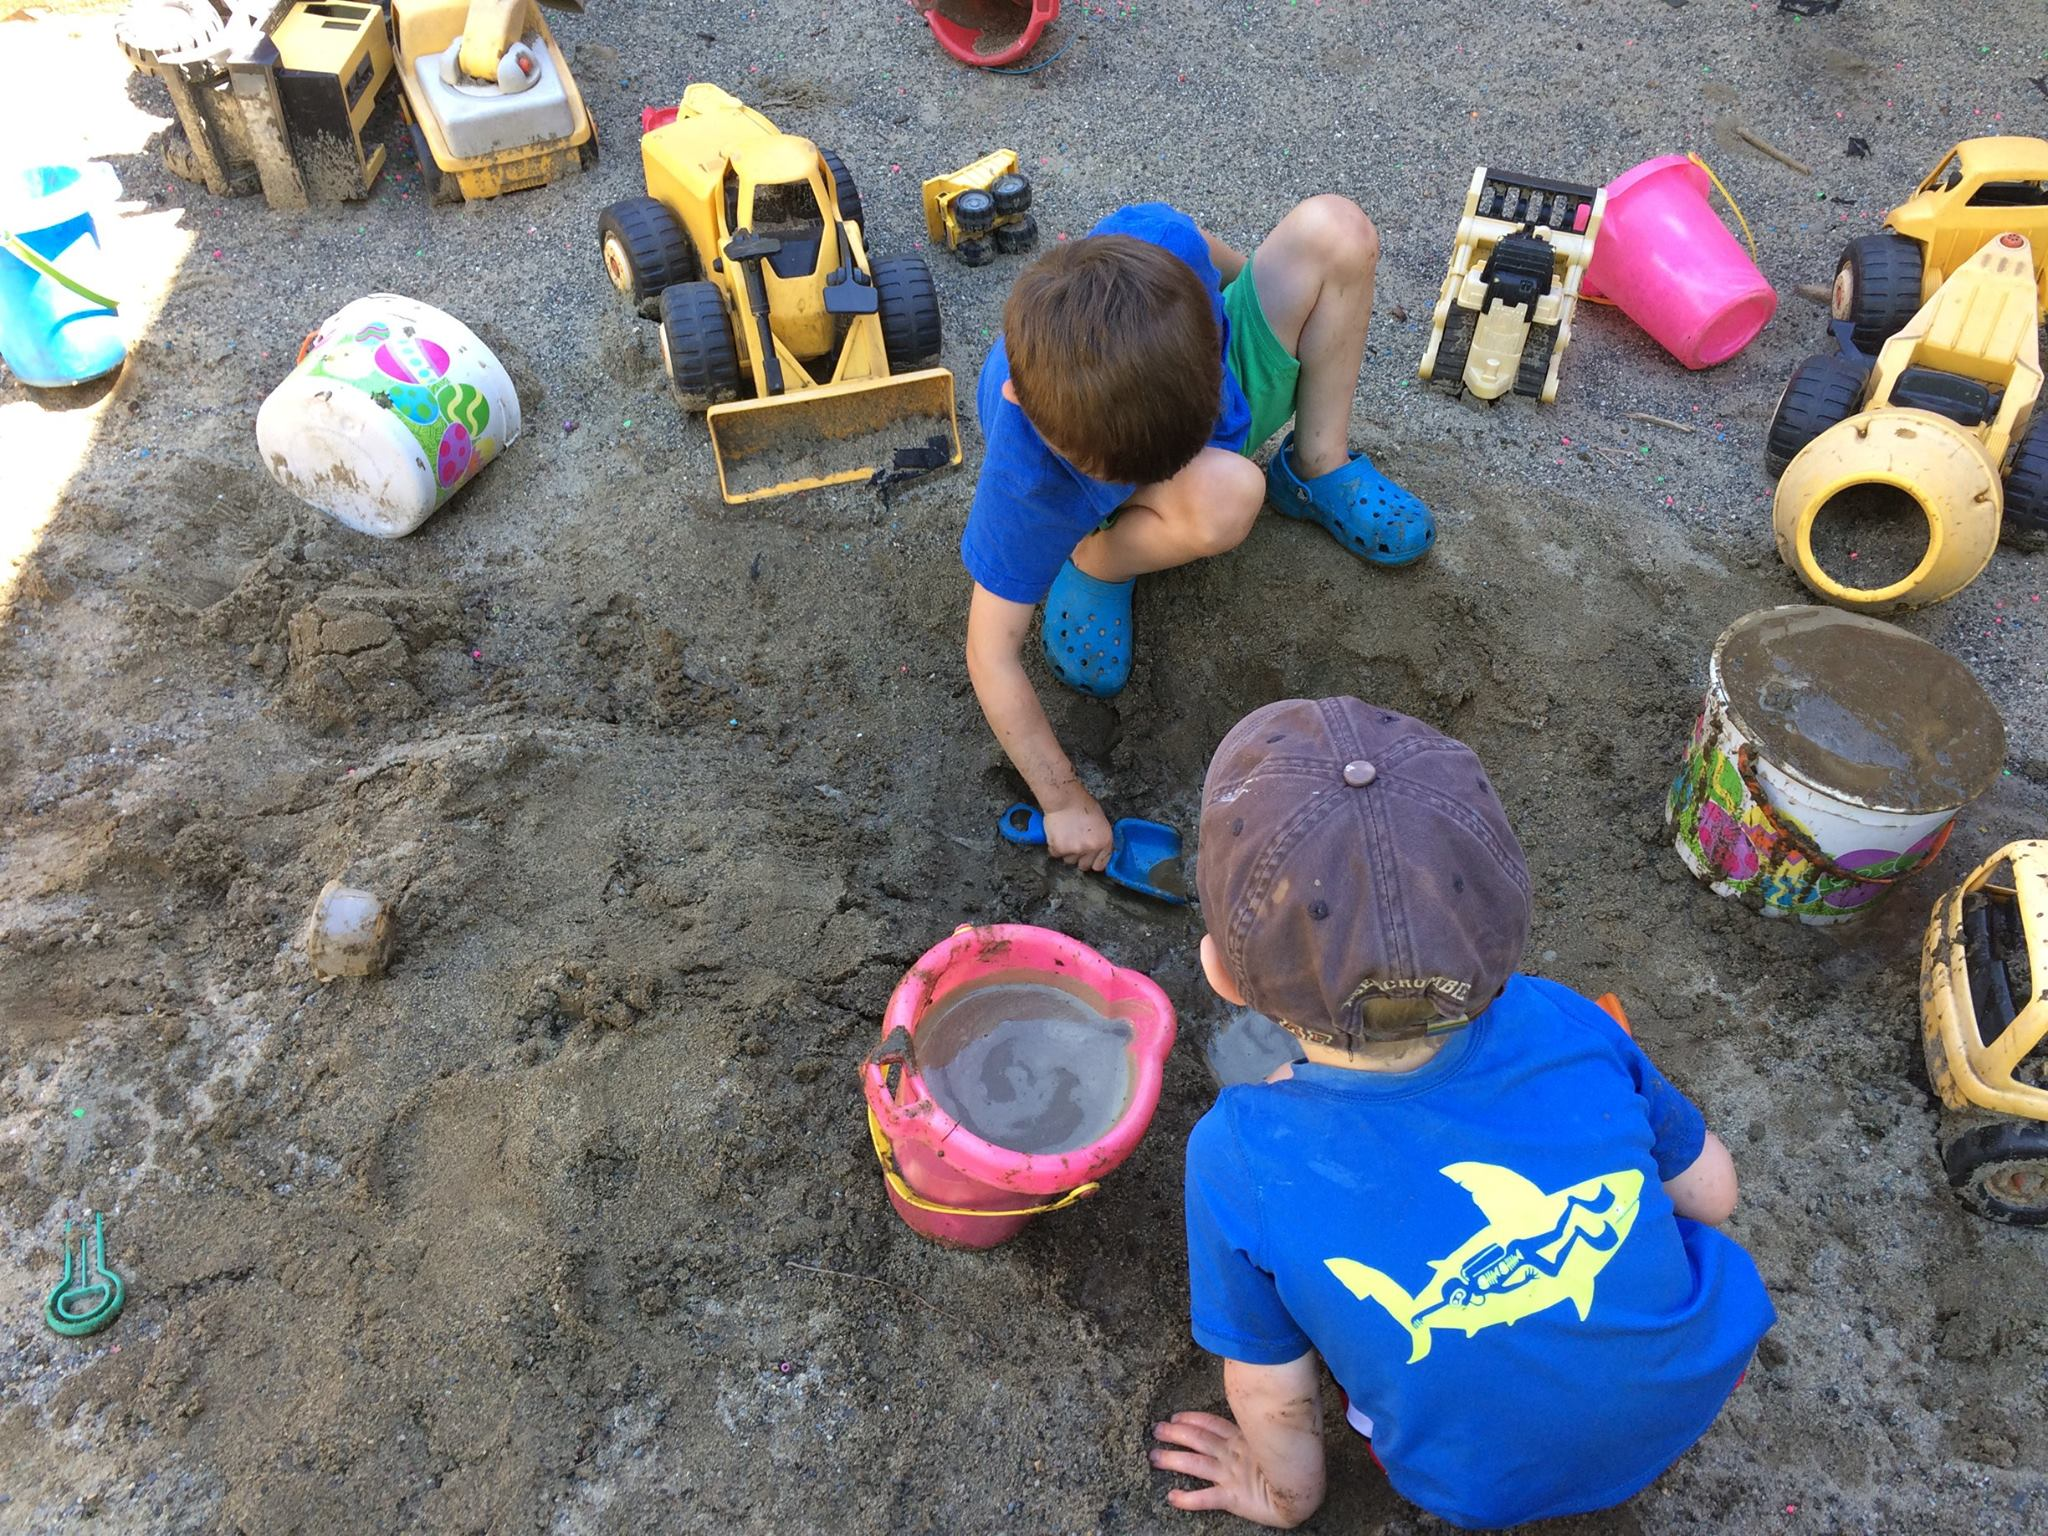 preschool children playing in sandbox